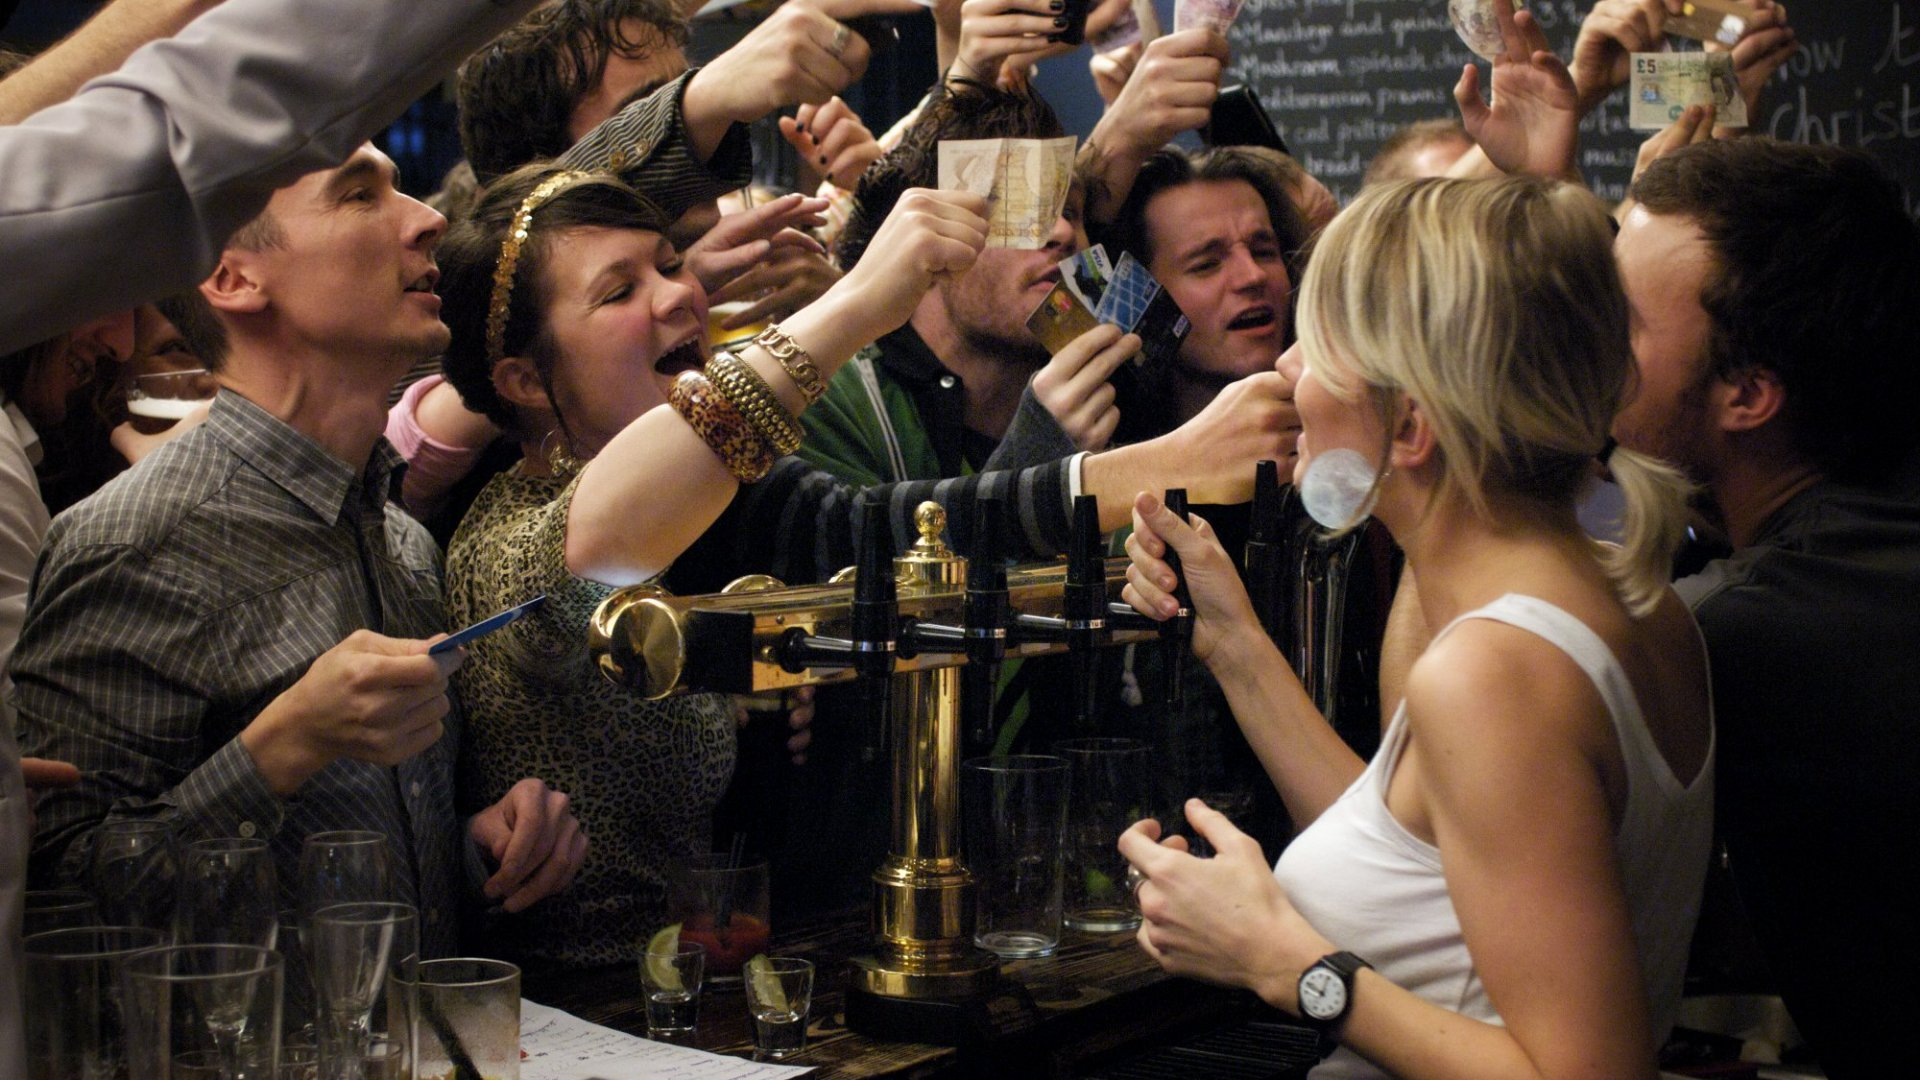 Forget Black Friday. Today is Drunk Wednesday (Now, Data From 10,000 Bars Proves It)